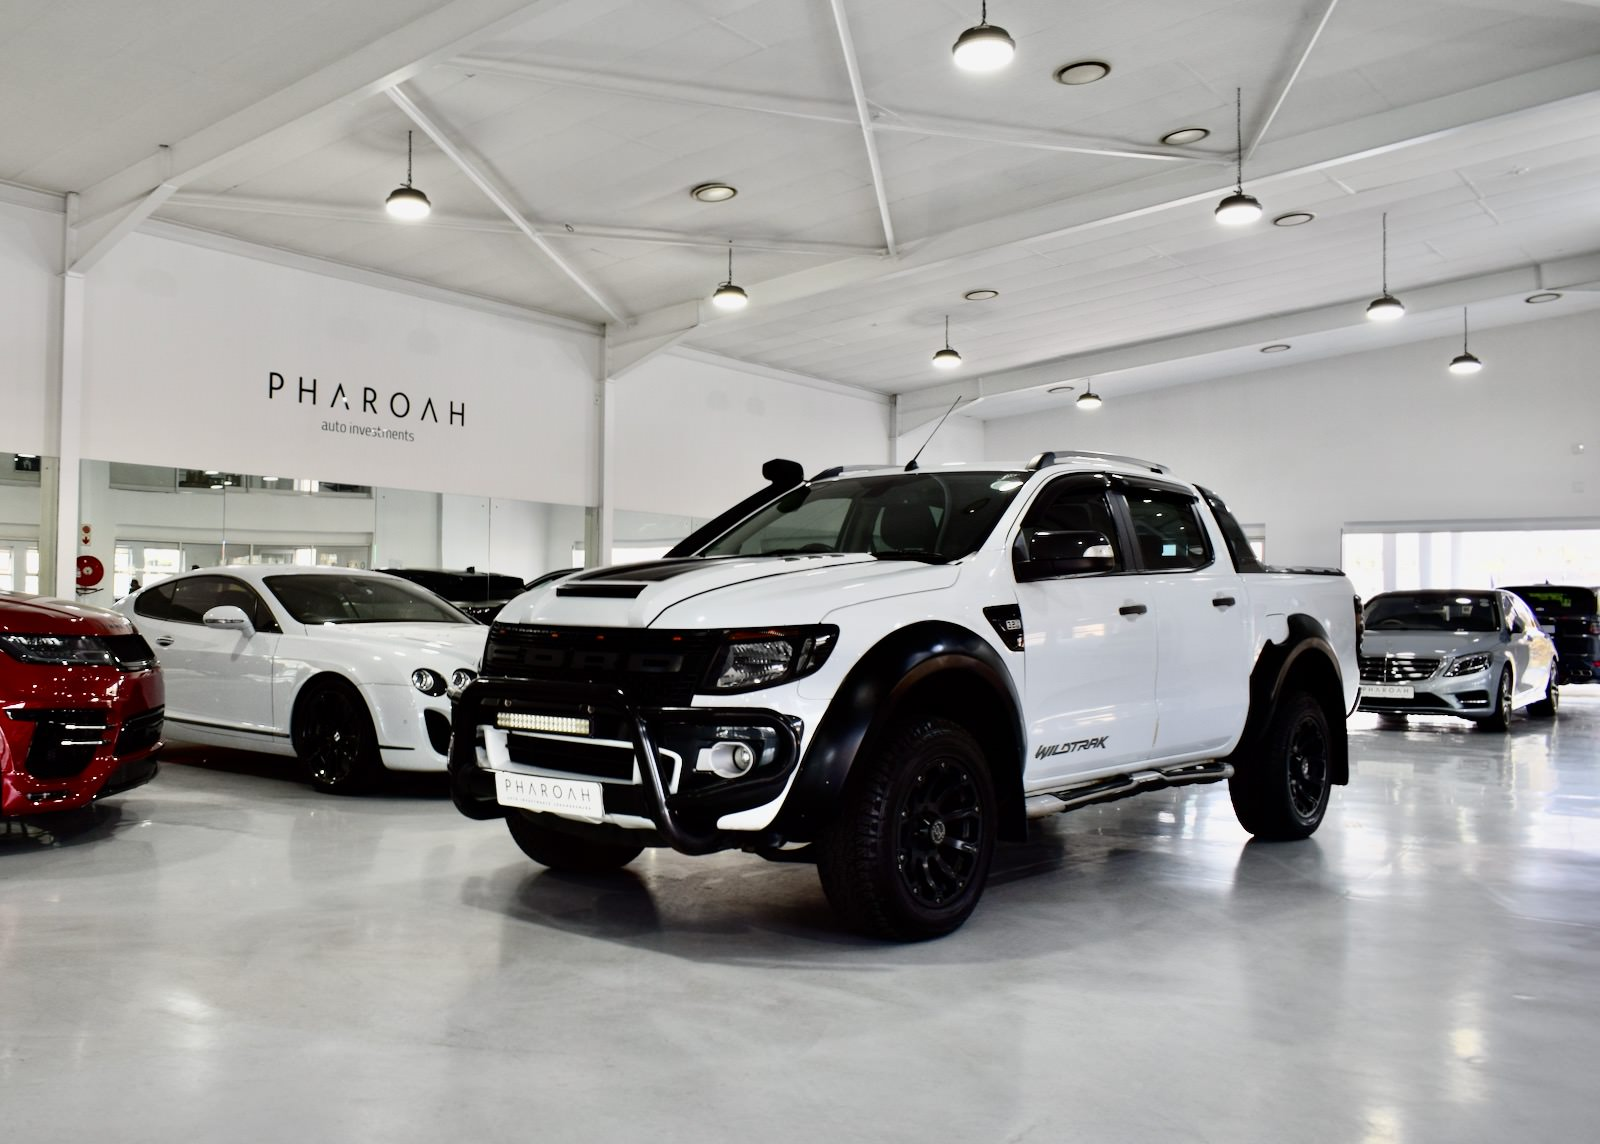 Ford Ranger 3.2 TDCI Double Cab Wildtrak 4×4 Raptor Pack - Pharoiah Auto - Via TrackRecon - 004